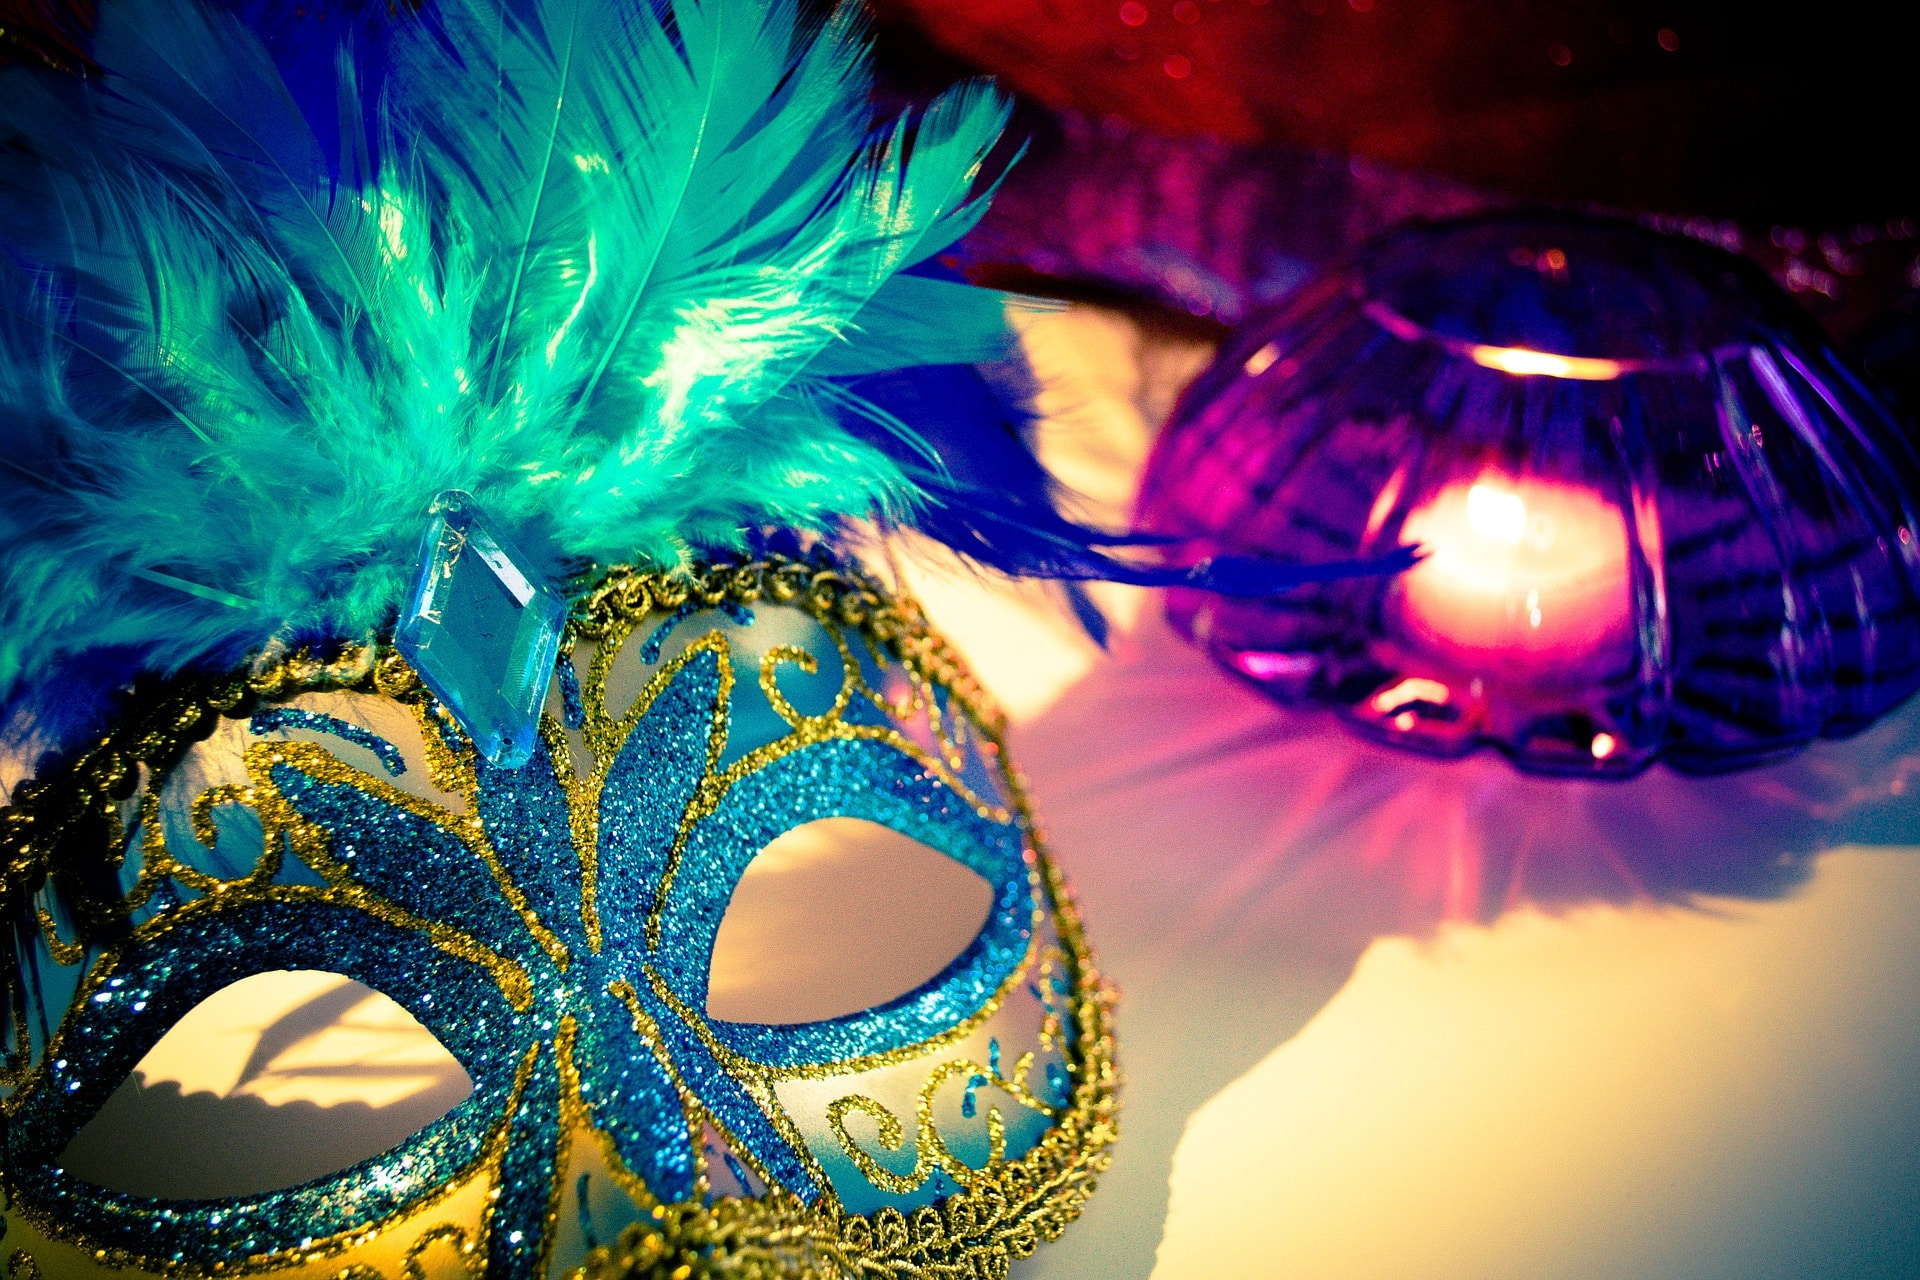 Easy Recipes For Mardi Gras Party via @mermaidsandmojitos